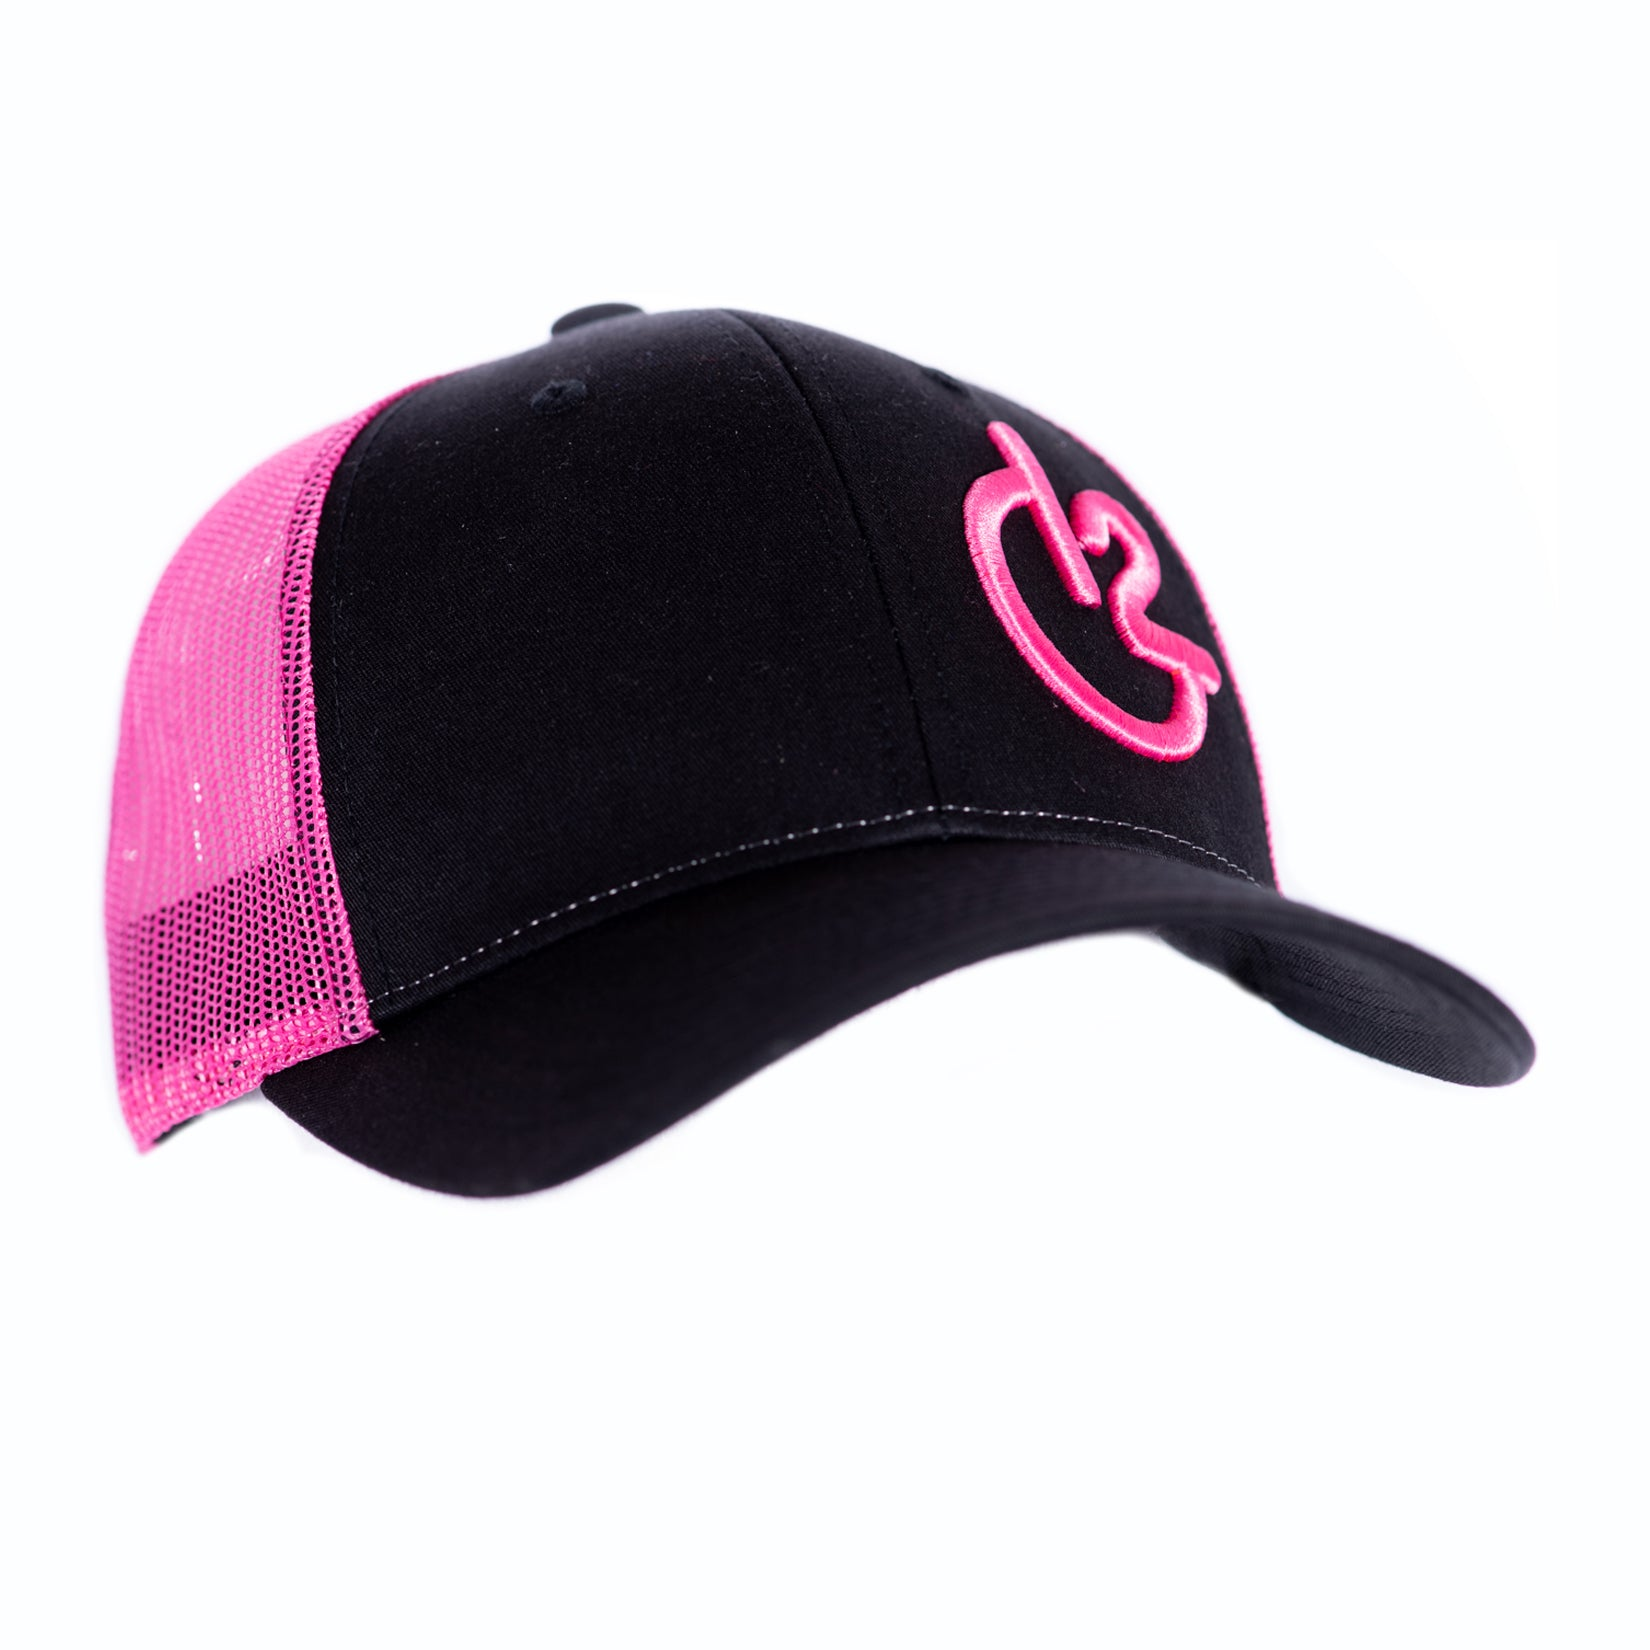 Black and Neon Pink 12 Gauge Low Profile Baseball Hat, Hats, 12 Gauge Ranch, 12 Gauge Ranch Ranch  12 Gauge Ranch